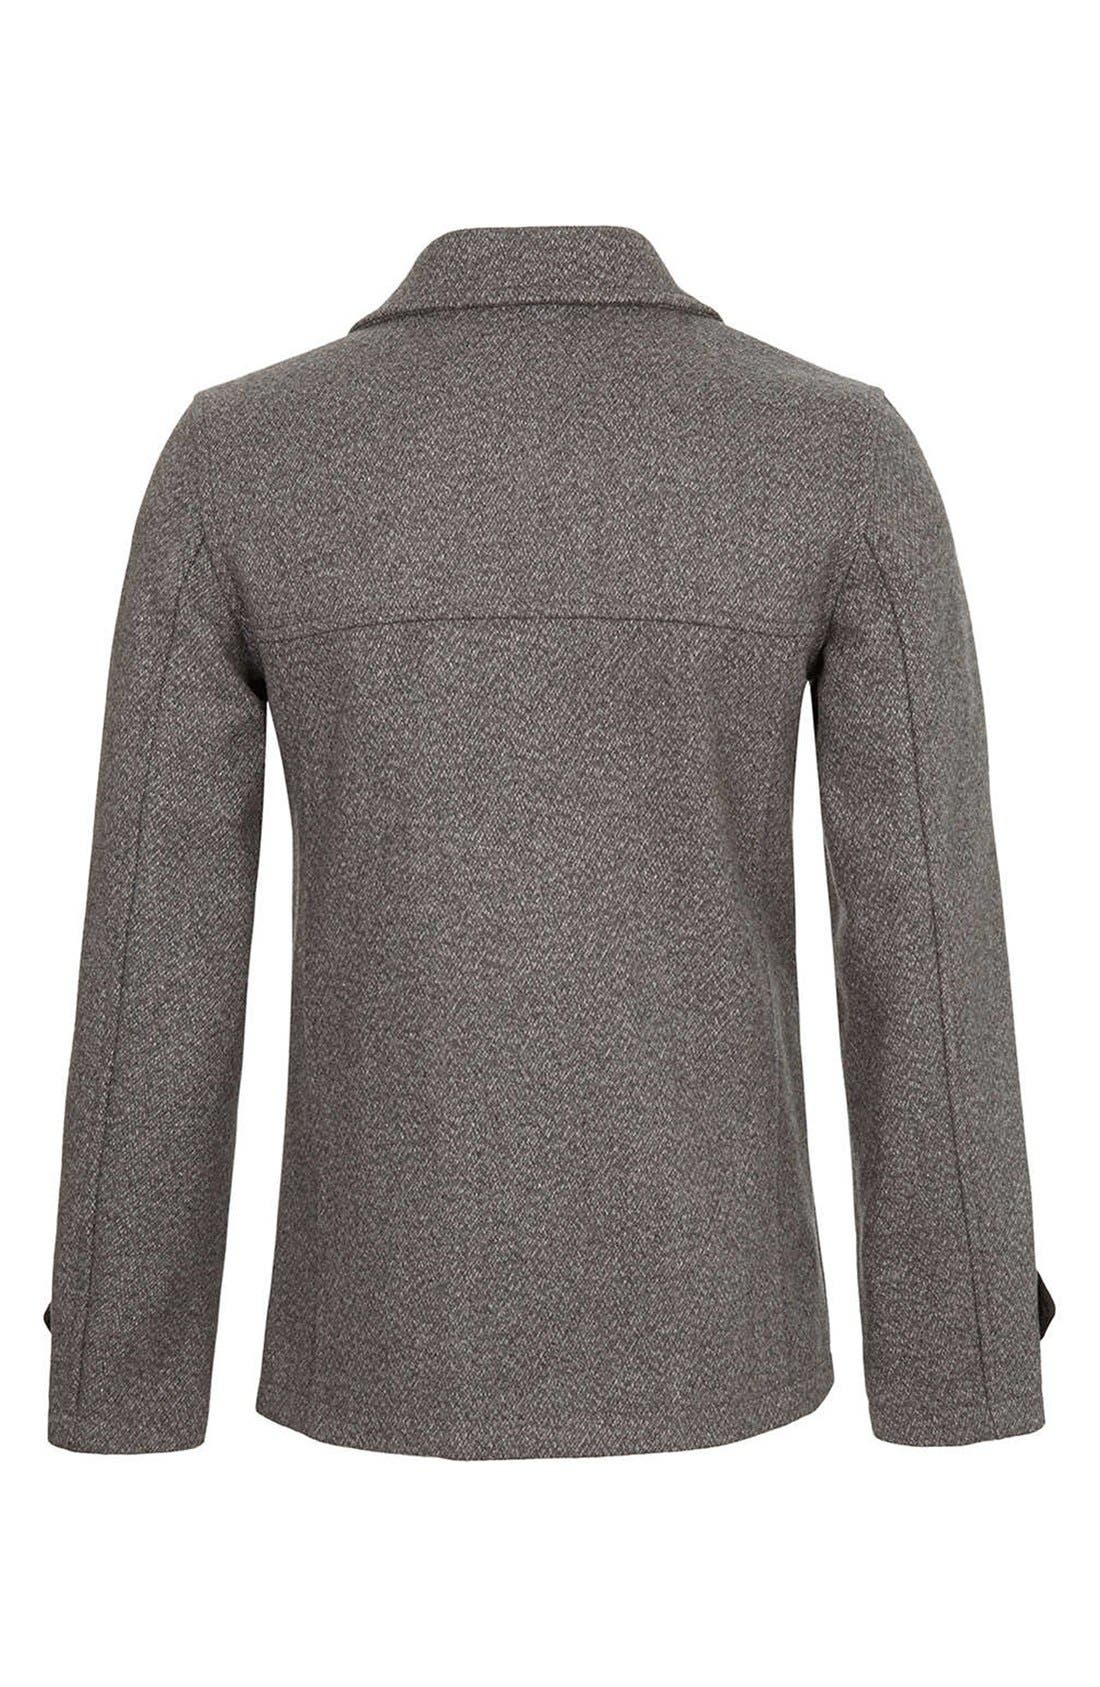 Alternate Image 2  - Topman Skinny Fit Double Breasted Peacoat